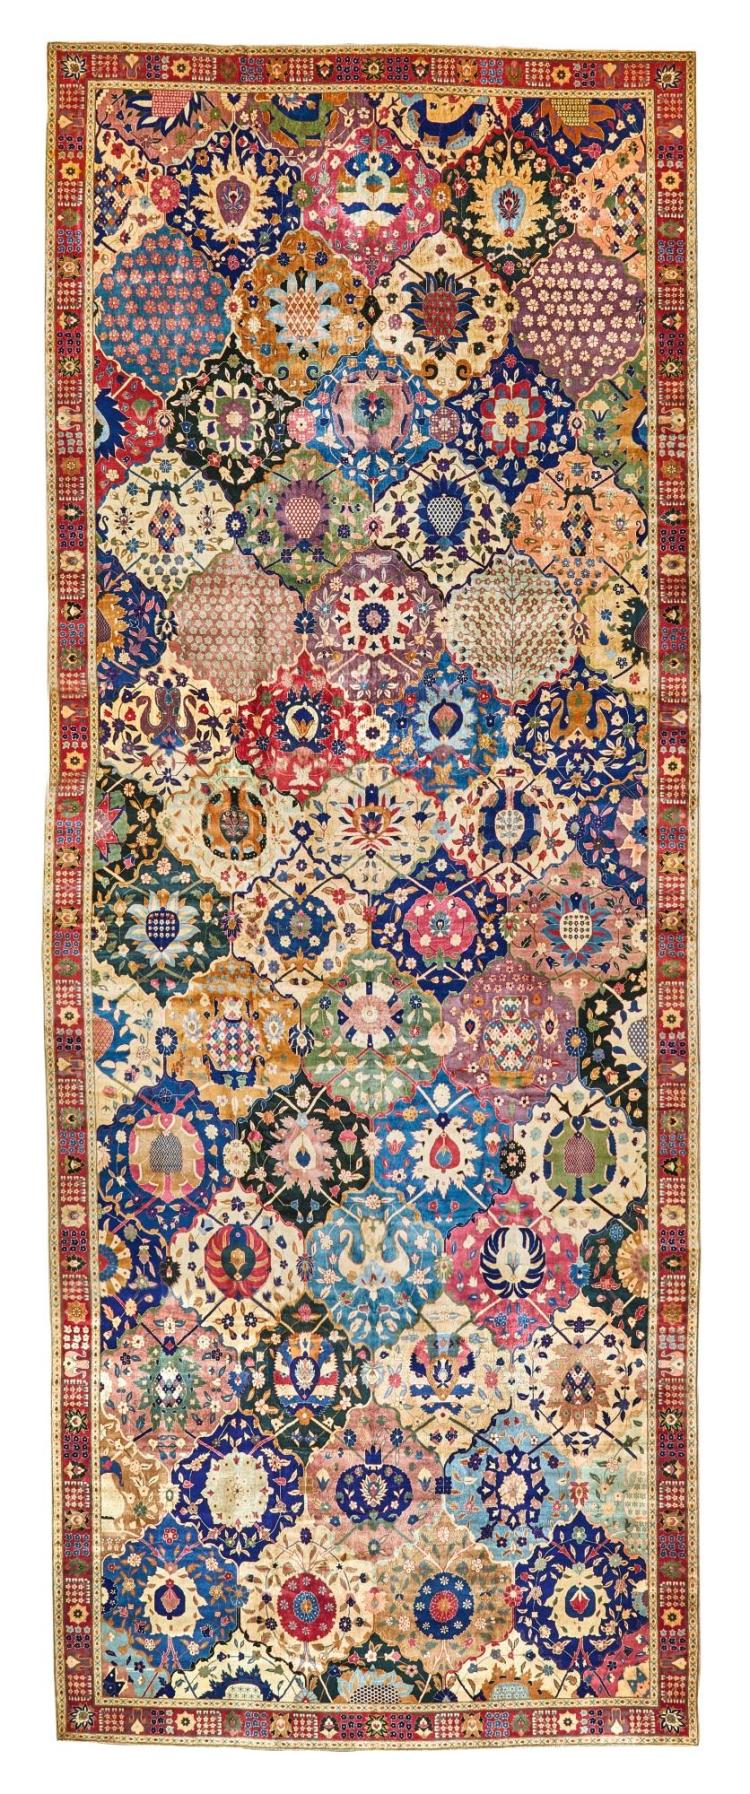 A LAHORE GARDEN GALLERY CARPET, NORTH INDIA |